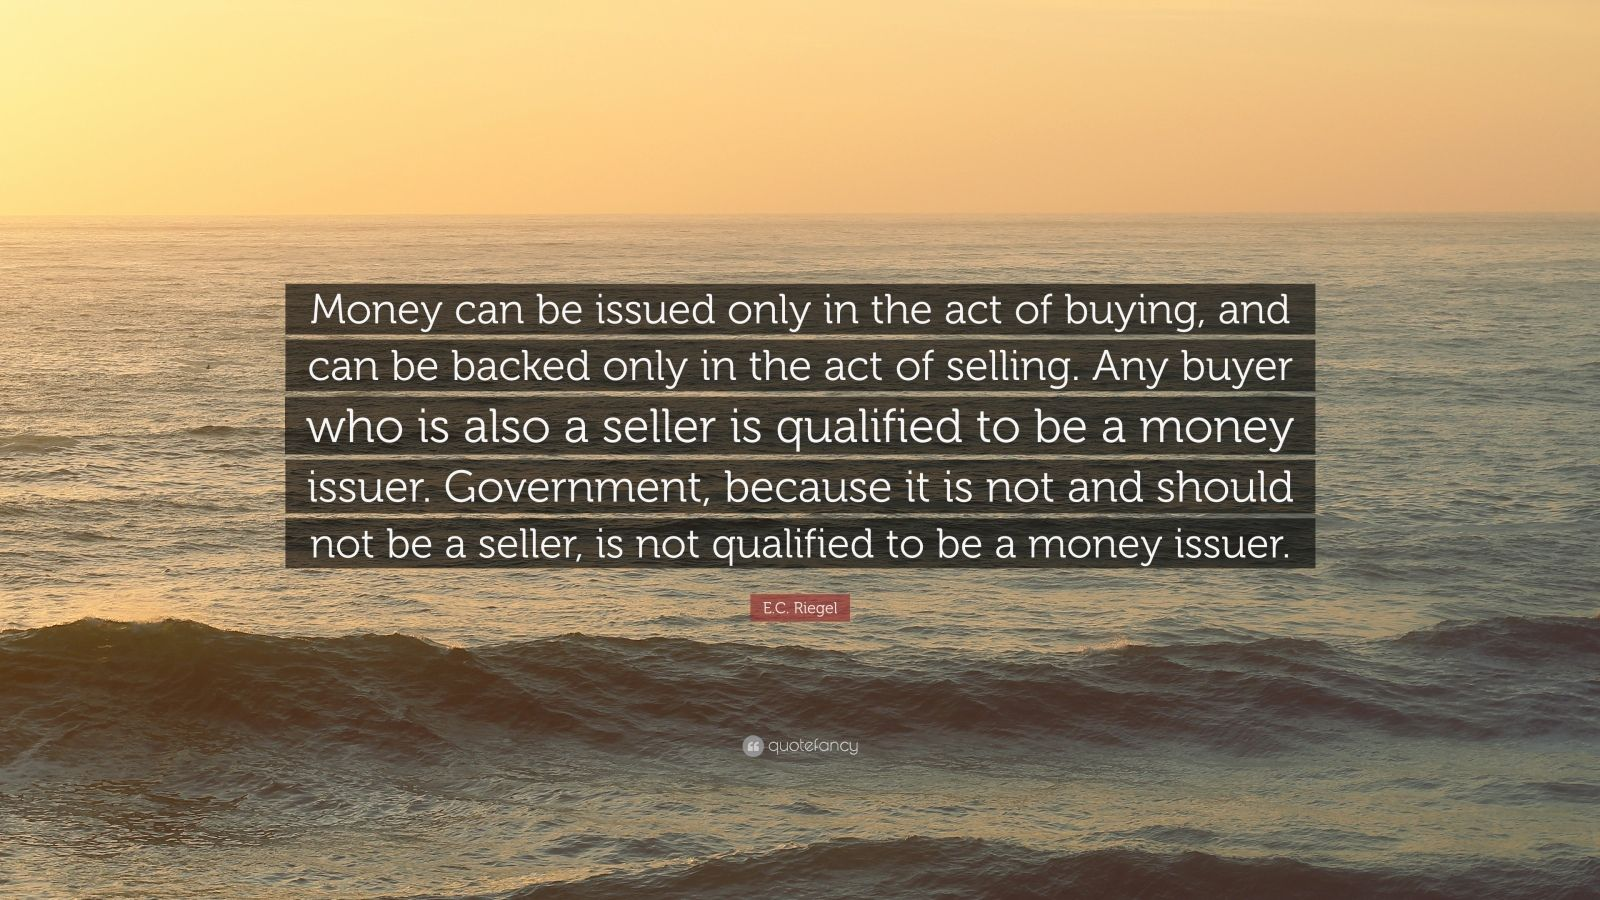 """E.C. Riegel Quote: """"Money can be issued only in the act of buying, and can be backed only in the act of selling. Any buyer who is also a seller is qualified to be a money issuer. Government, because it is not and should not be a seller, is not qualified to be a money issuer."""""""